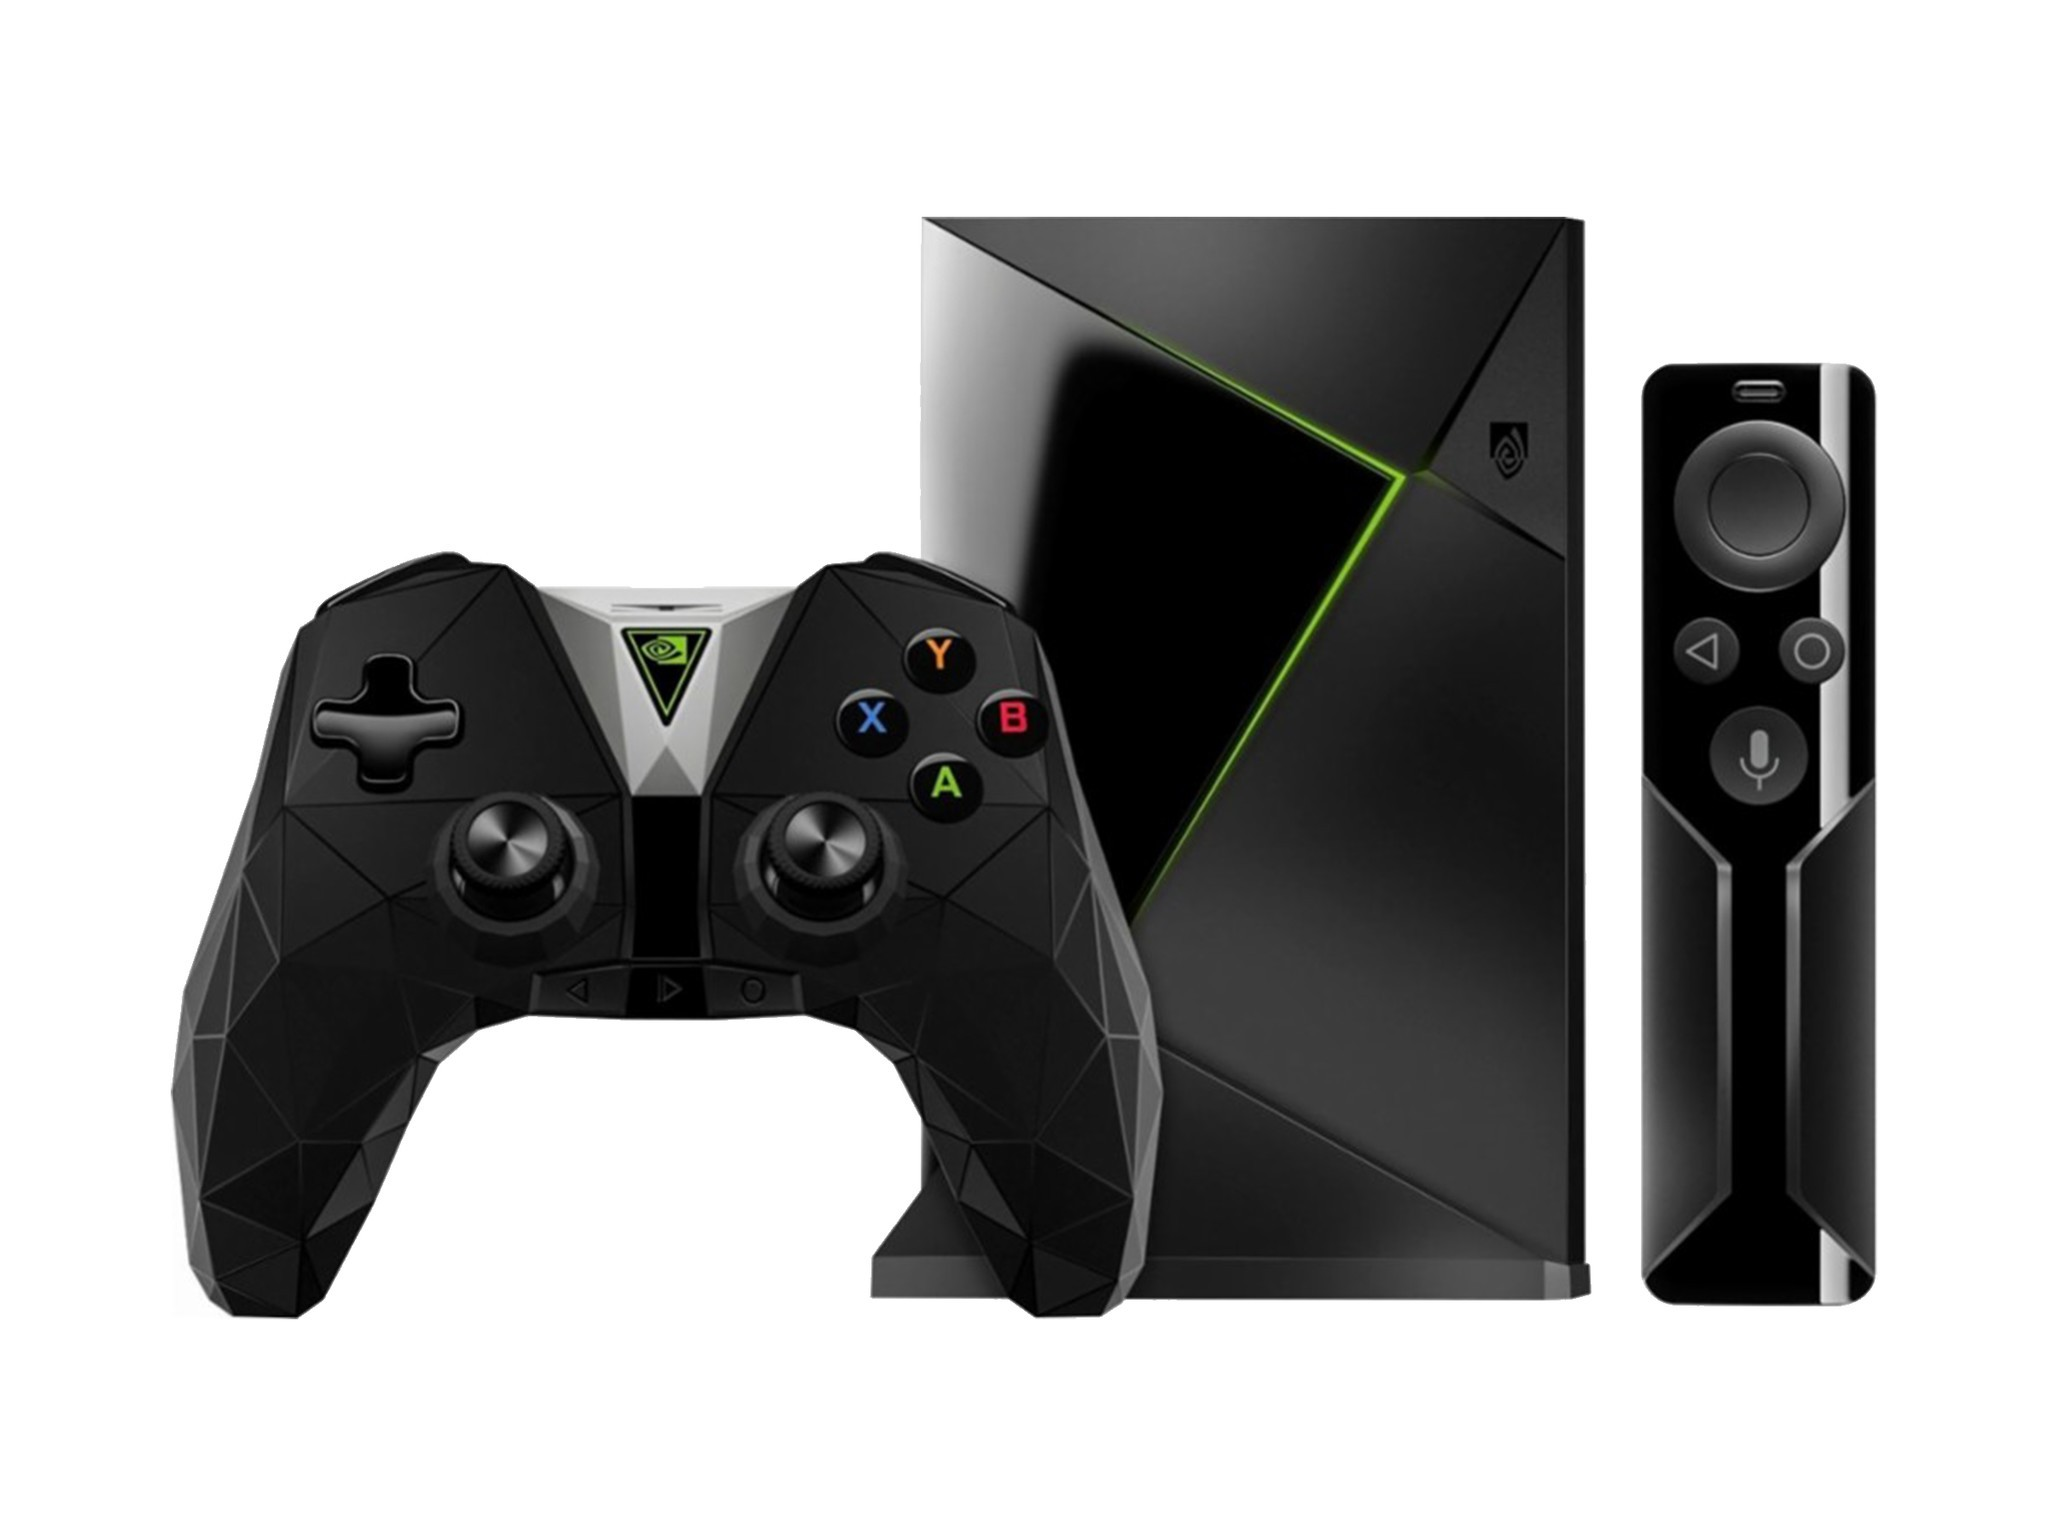 Can I use NVIDIA Shield TV Pro as a Plex server? - AIVAnet